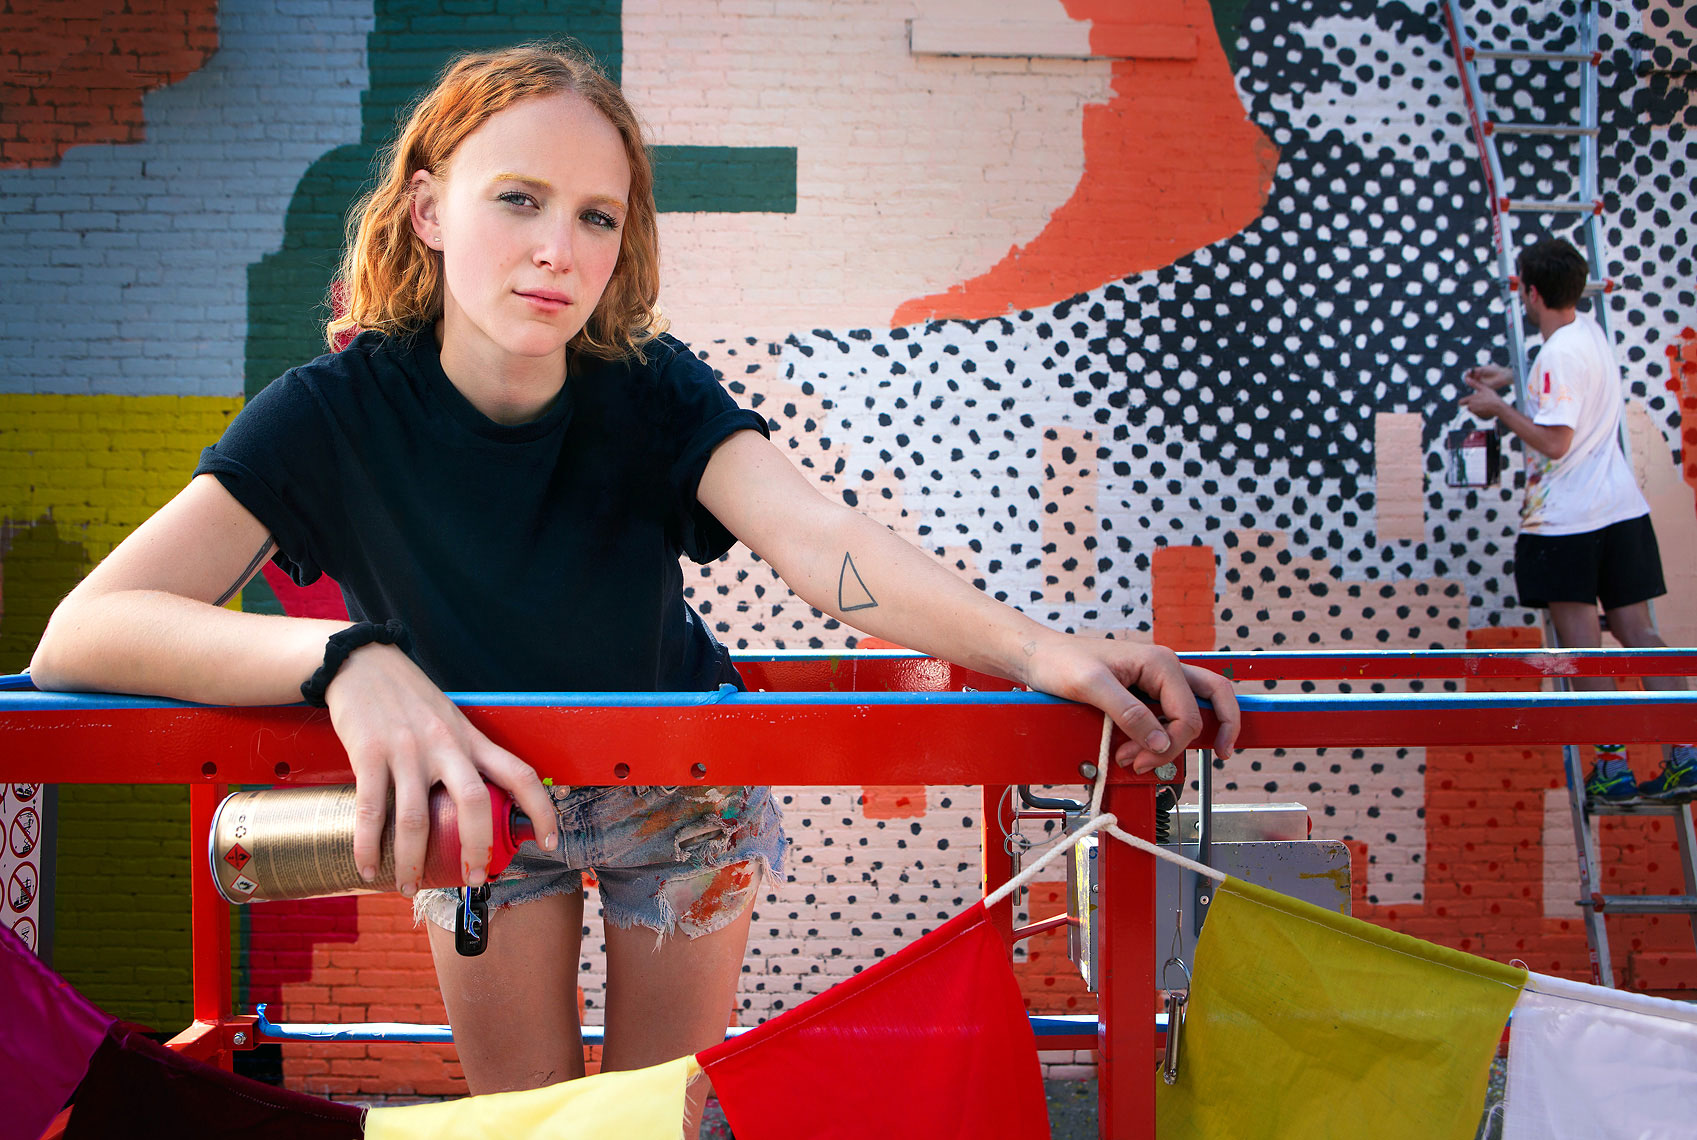 detroit-environmental-portrait-of-artist-muralist-ellen-rutt-photographer-scott-stewart